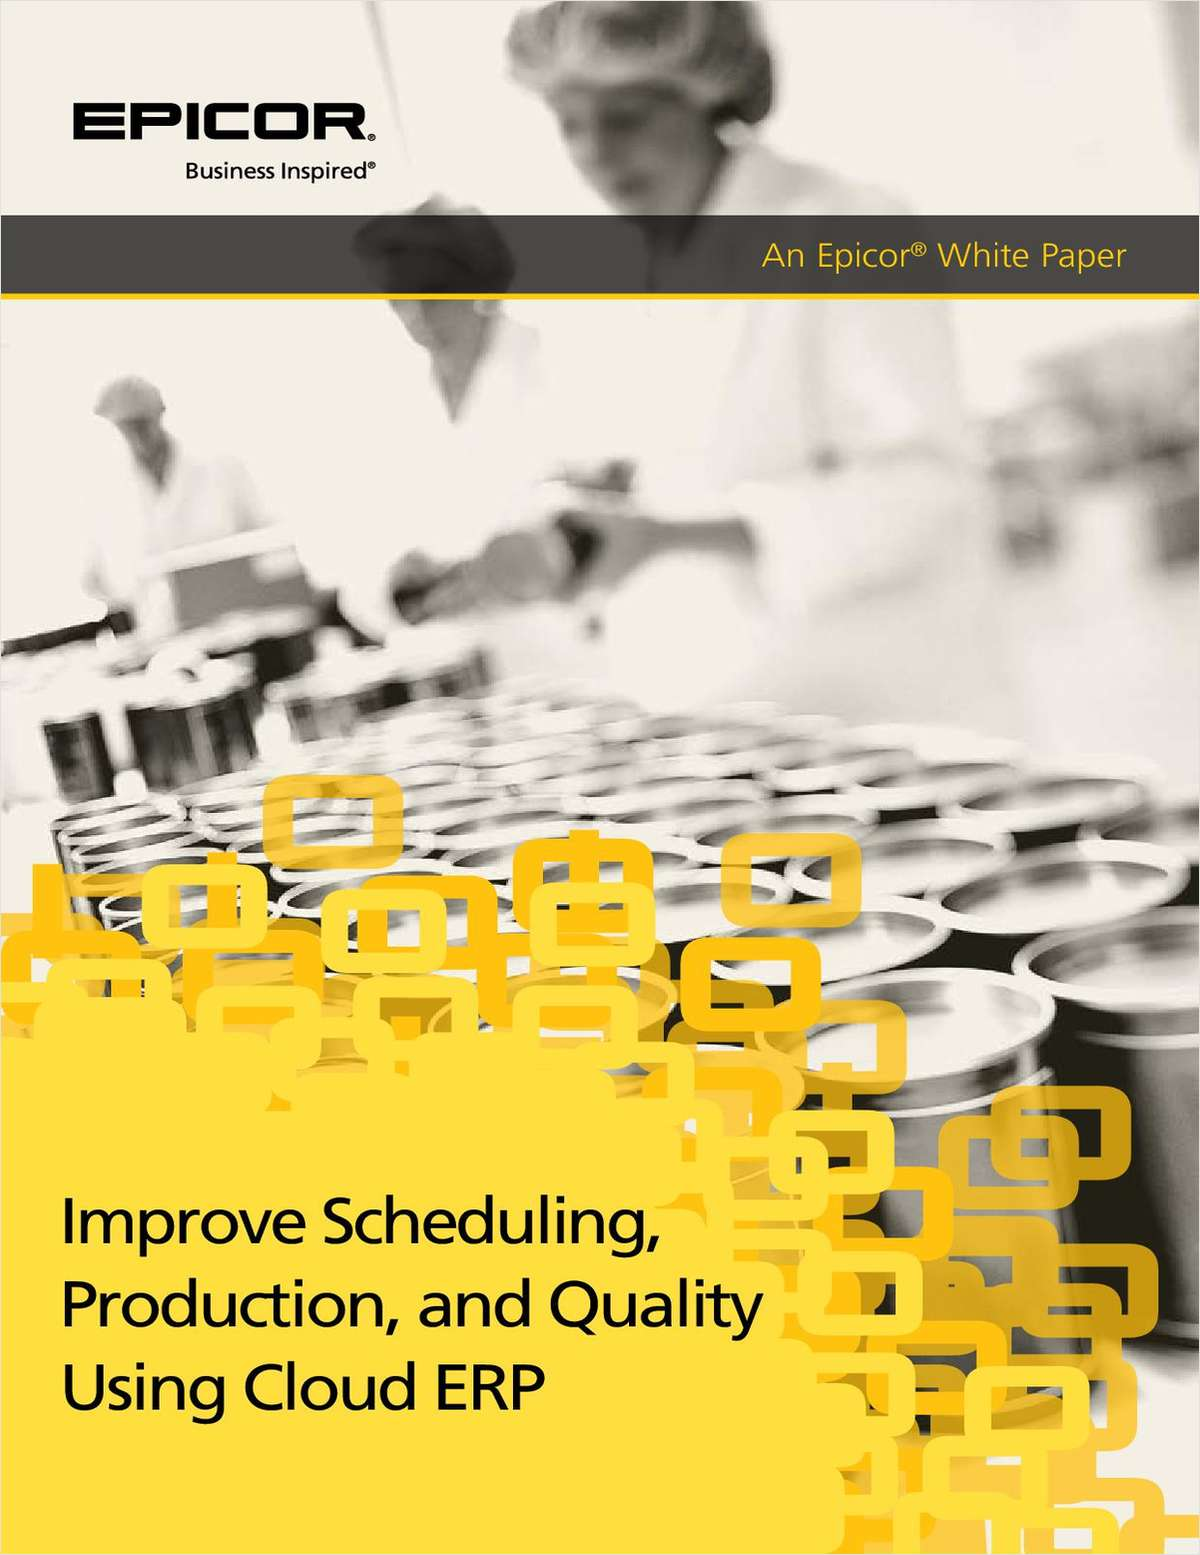 Improve Scheduling, Production, and Quality Using Cloud ERP